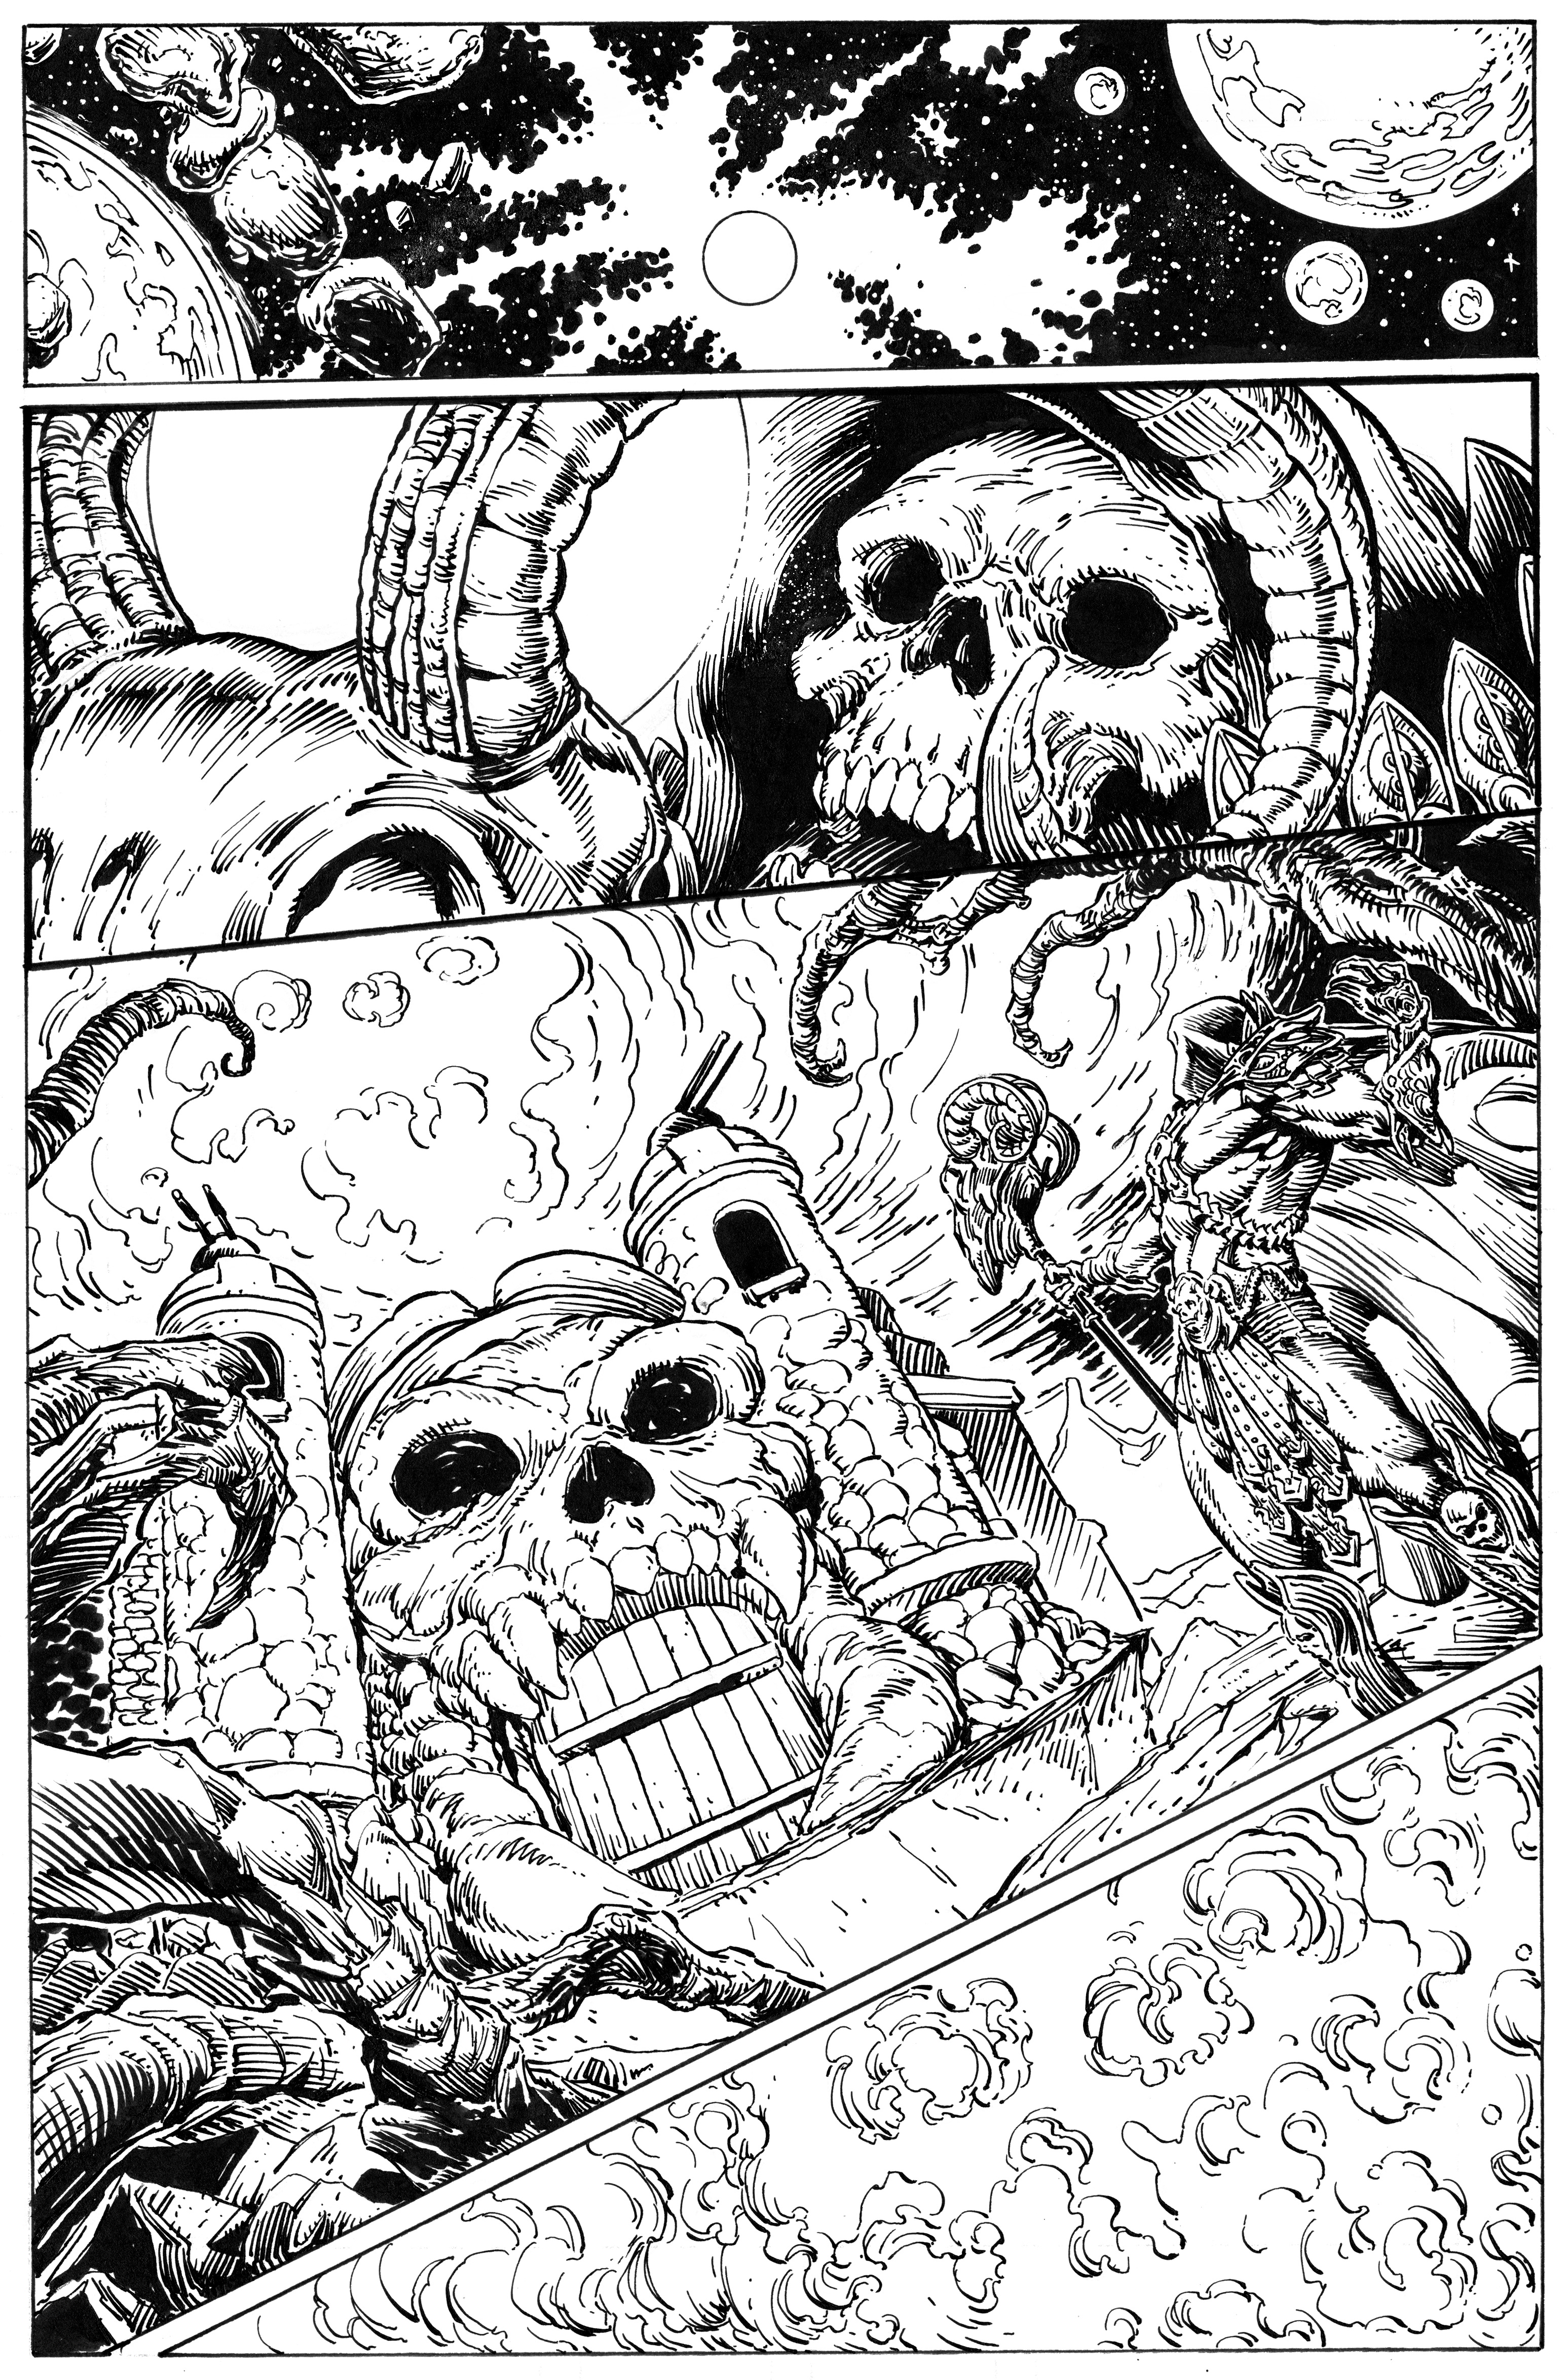 Artwork from Issue #1.